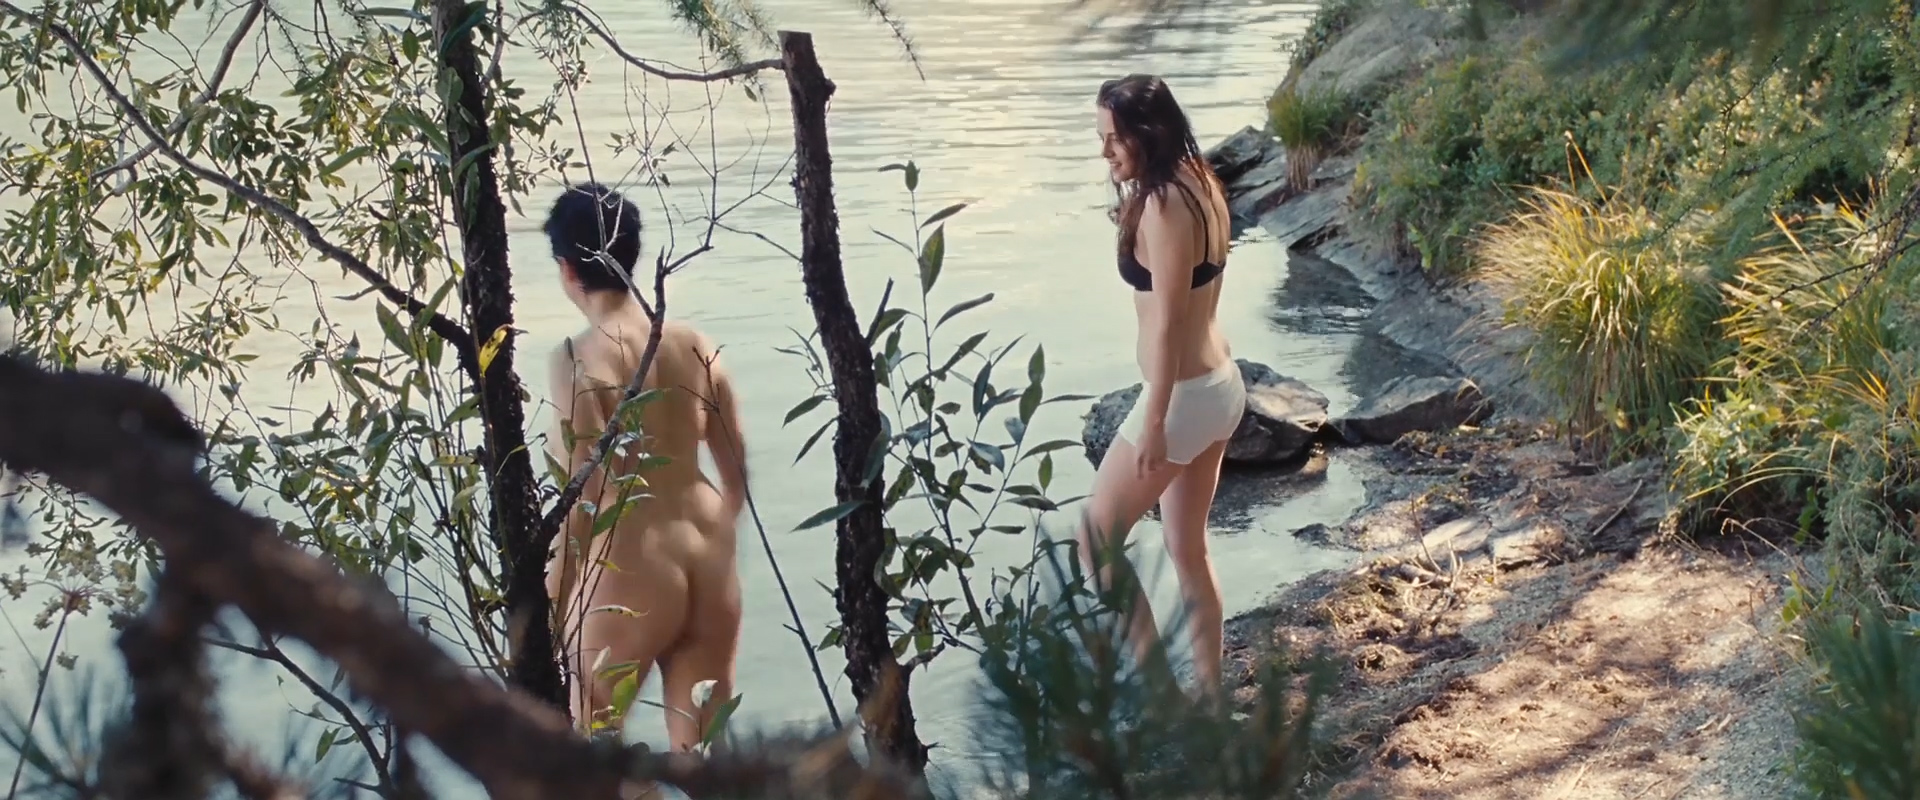 Kristen Stewart hot and sexy in bra and panties and Juliette Binoche nude bush - Clouds of Sils Maria (2014) hd720-1080p